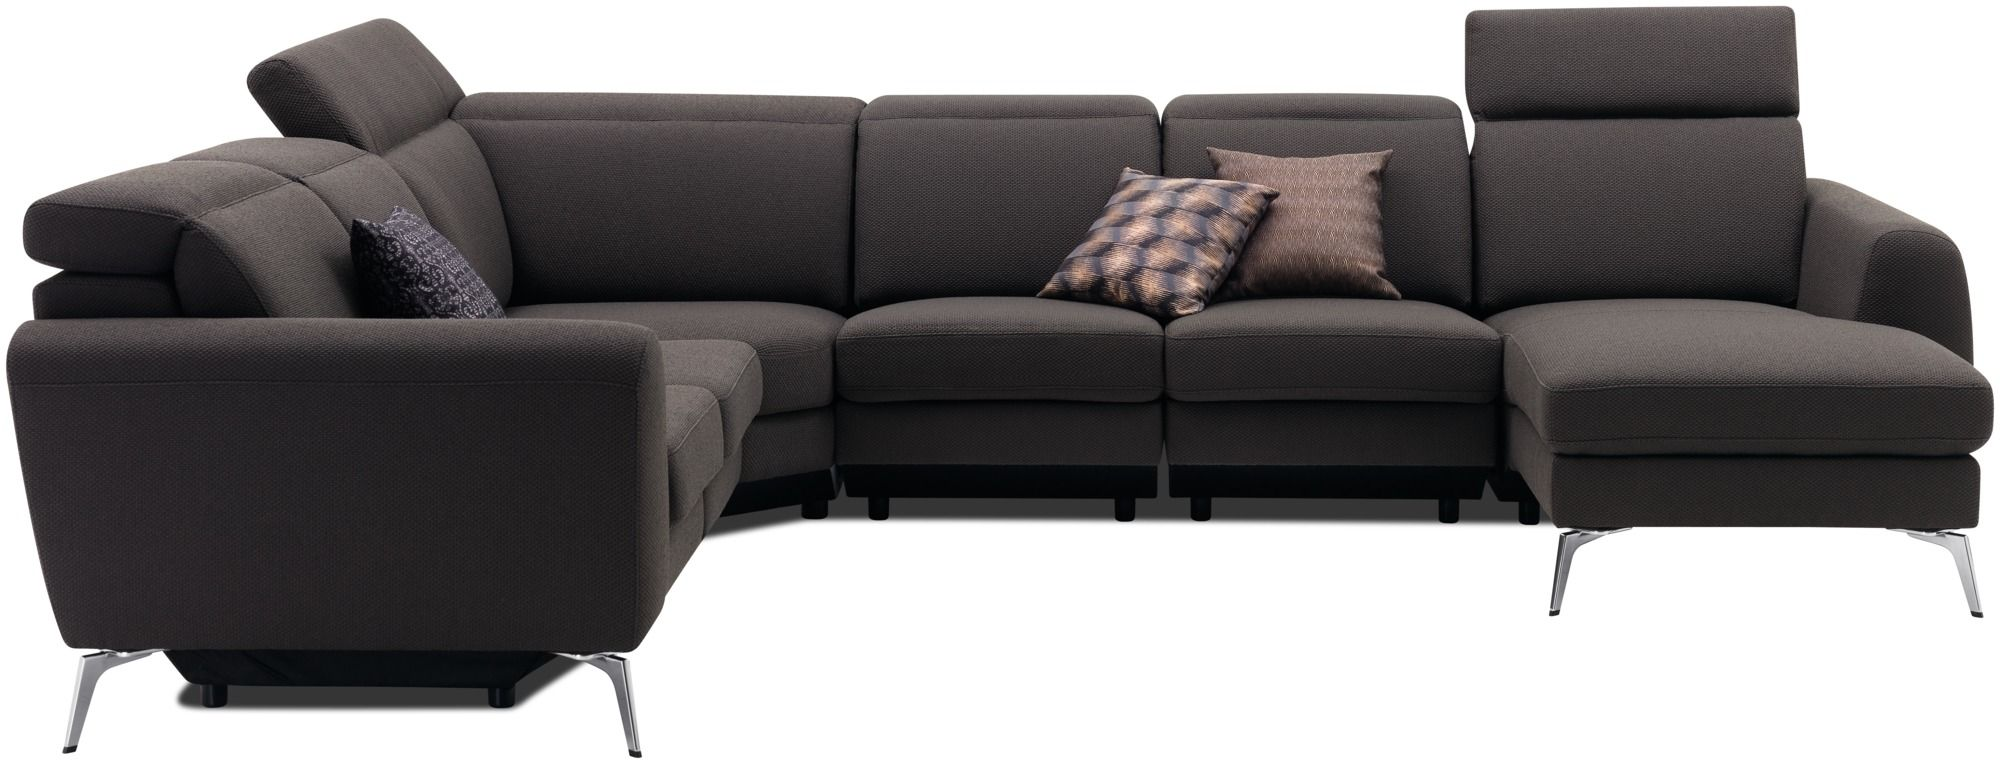 Madison Modern Reclinersoffa Kvalitet Fran Boconcept Sofa Design Luxury Sofa Modern Contemporary Sofa Design